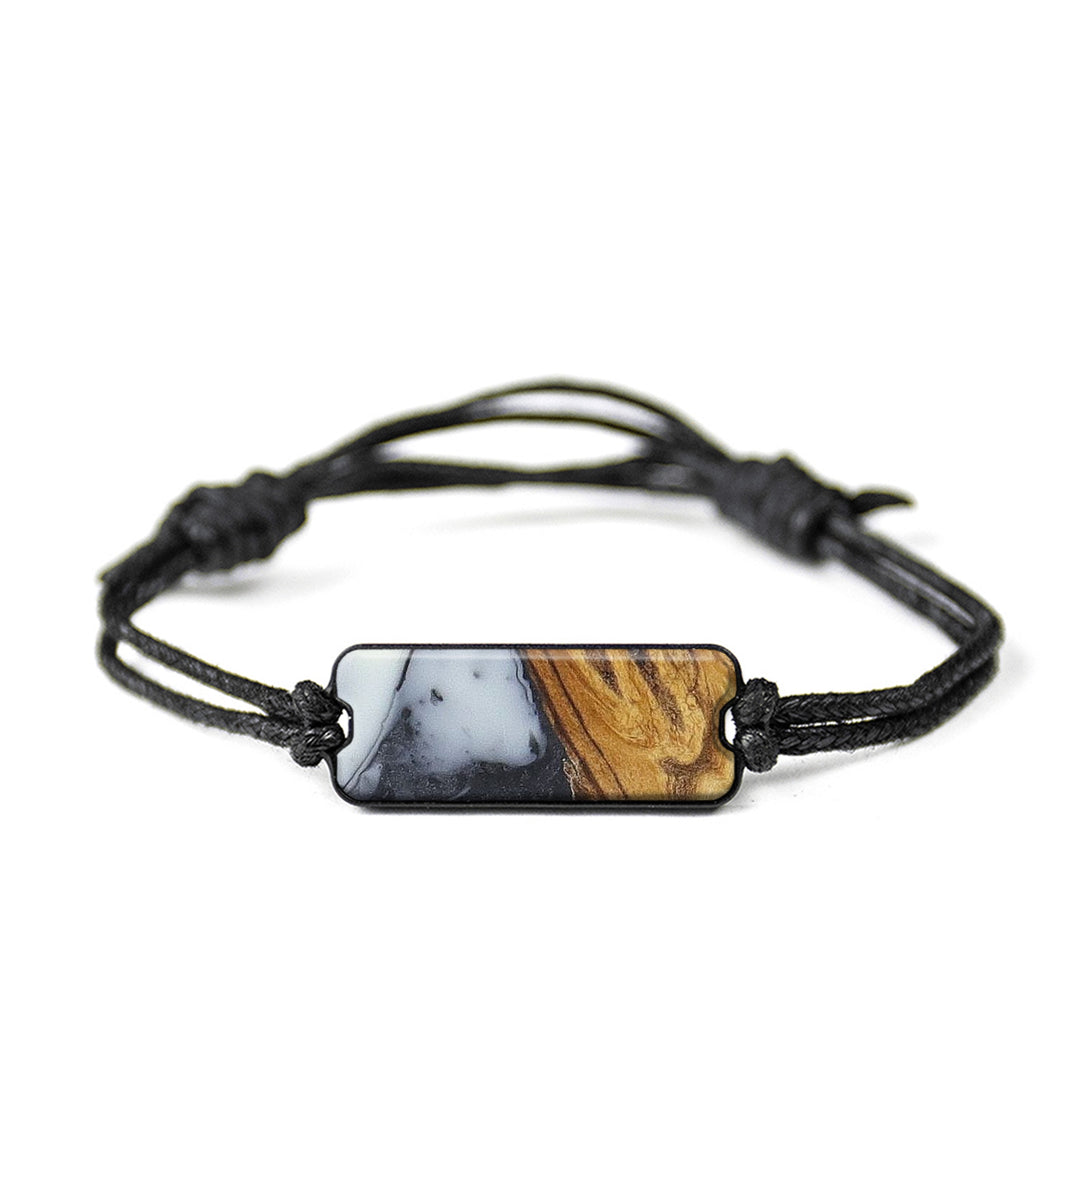 Classic Wood+Resin Bracelet - Jeniece (Black & White, 393699)